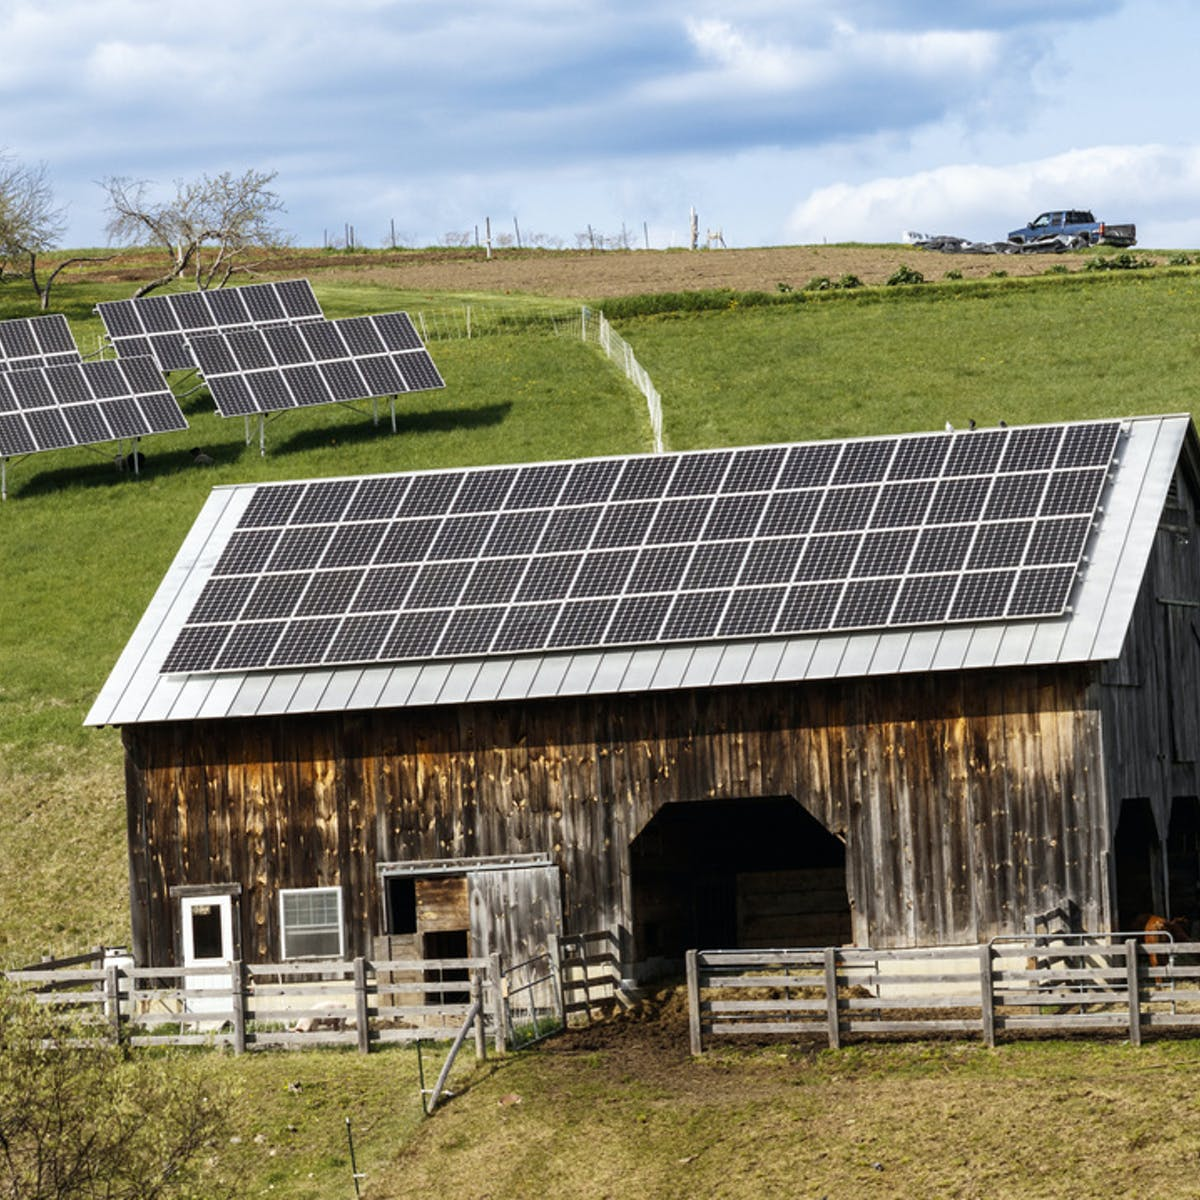 Could a Small Patch of Farmland Meet Humanity's Solar Power Needs?